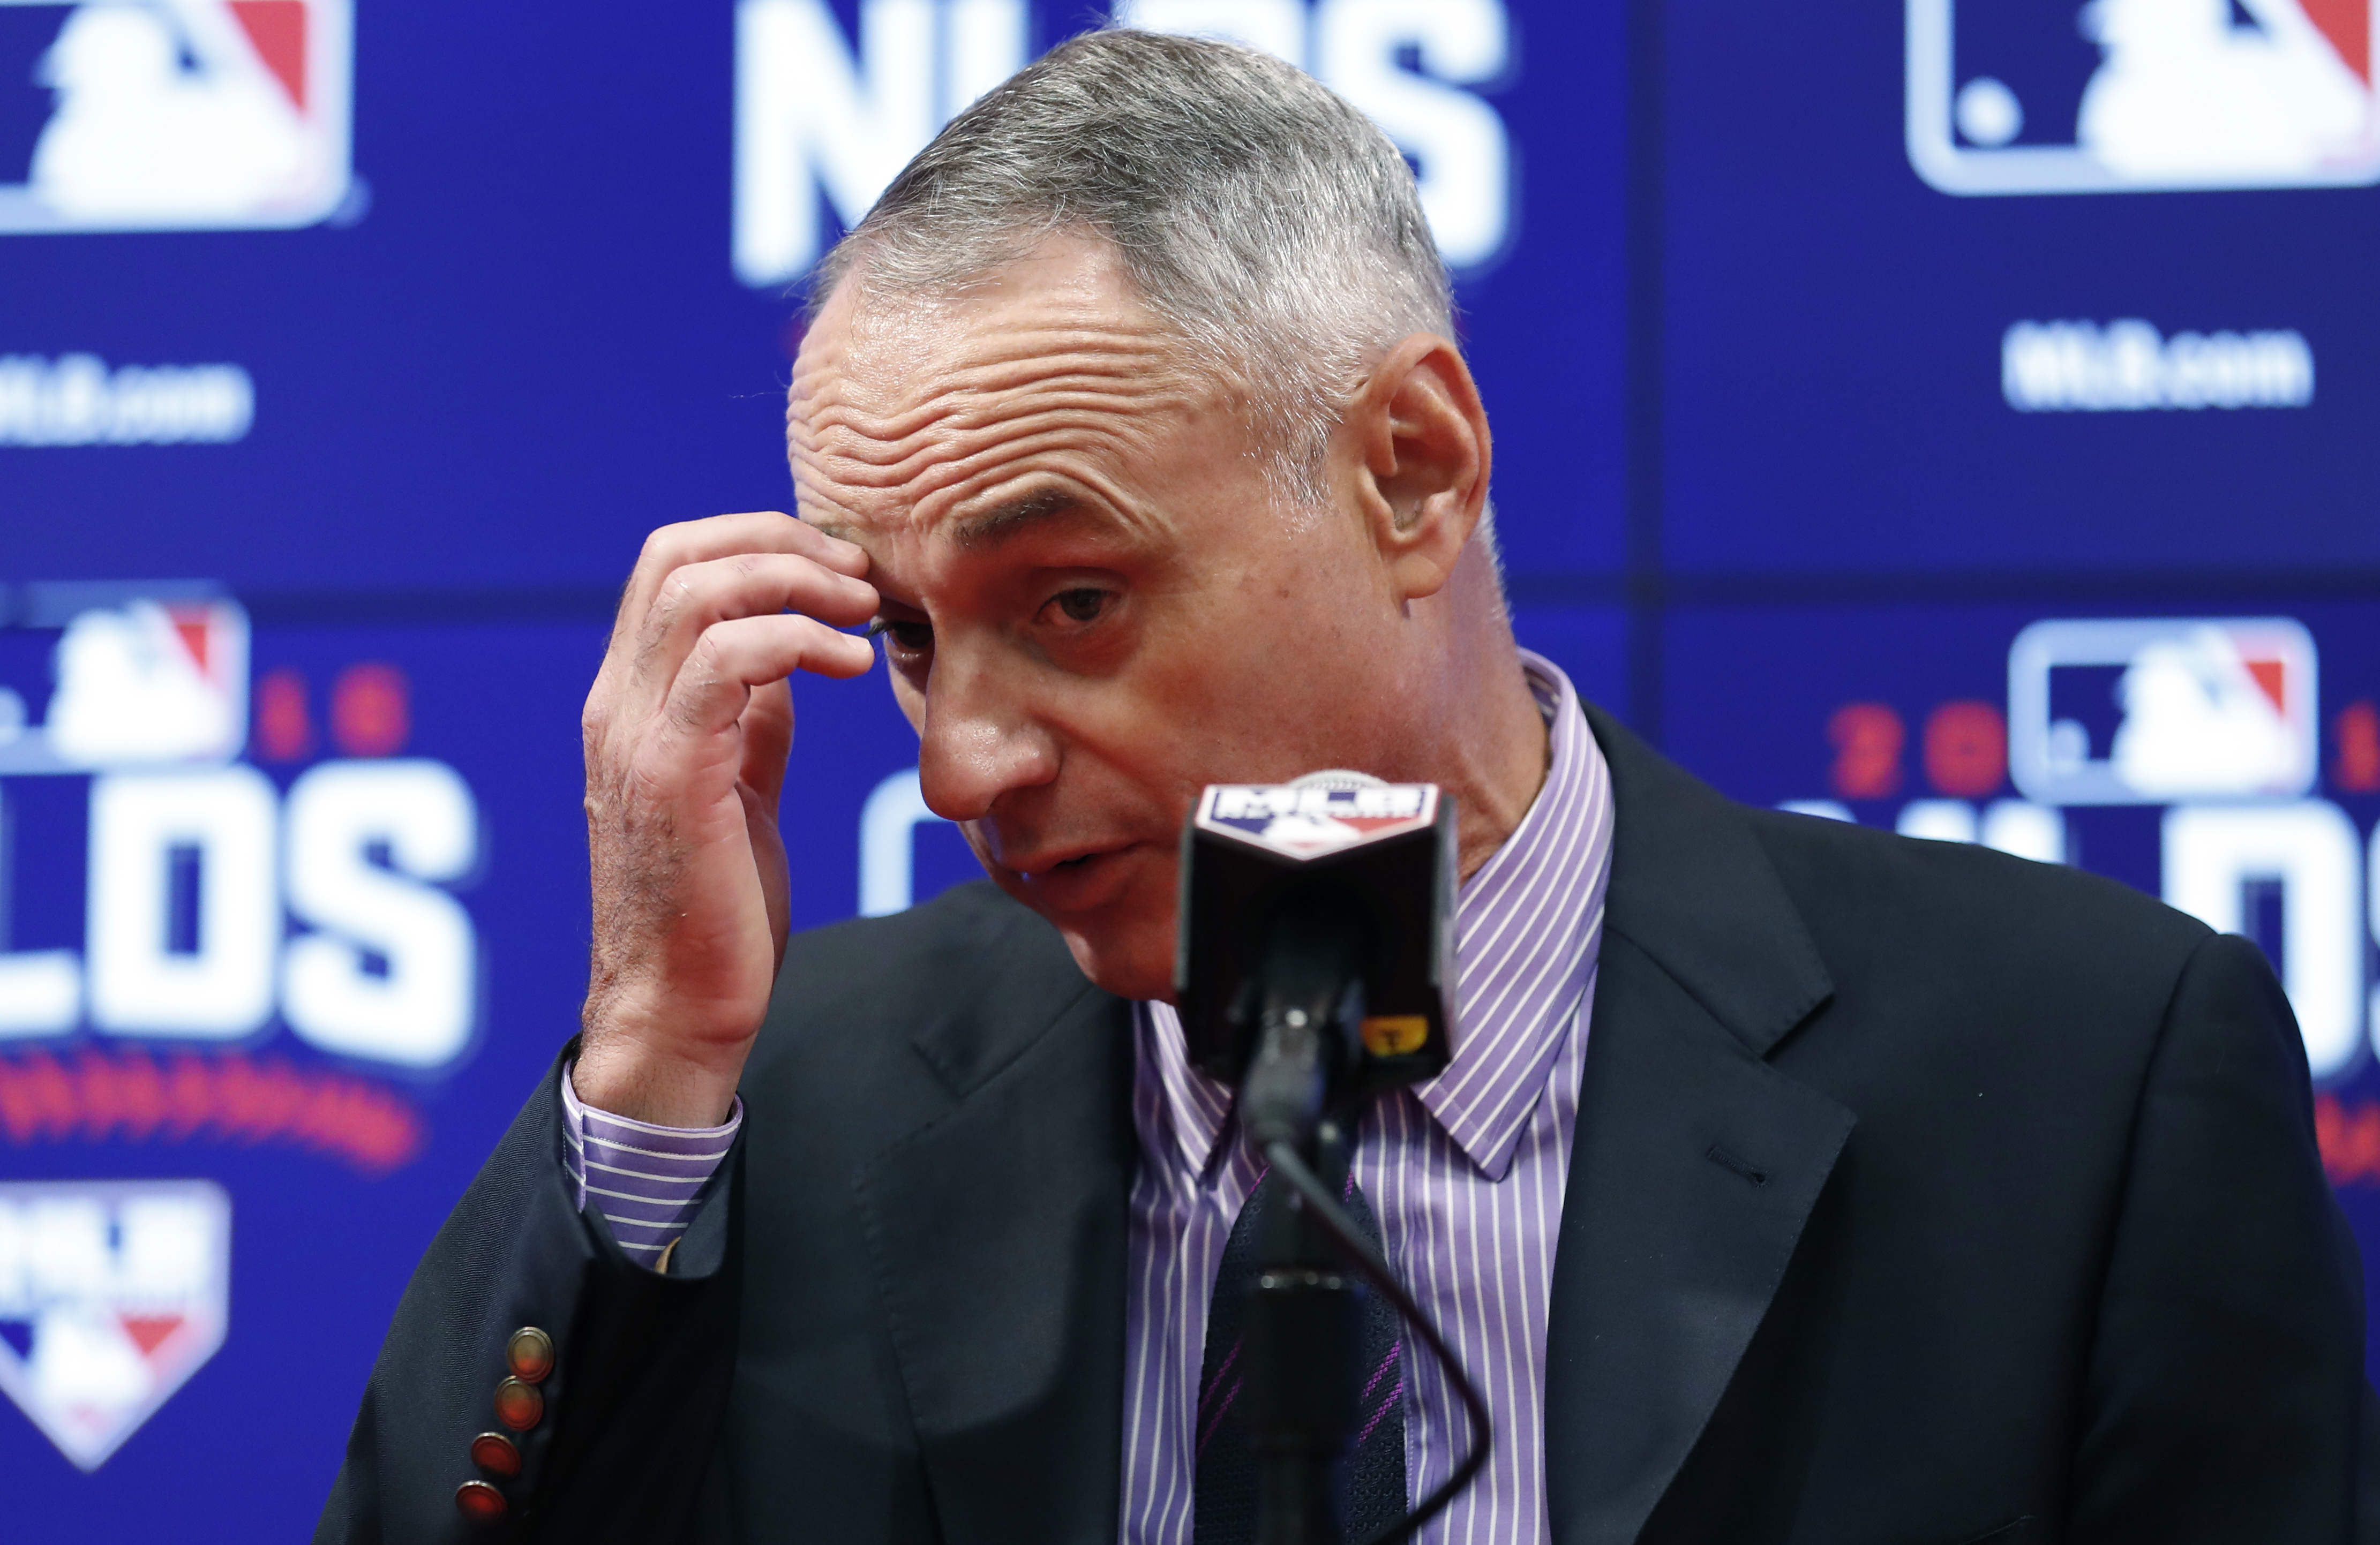 Baseball commissioner Rob Manfred pauses during a media availability before Game 2 of baseball's National League Division Series between the Washington Nationals and the Los Angeles Dodgers, at Nationals Park, Saturday, Oct. 8, 2016, in Washington. Manfre